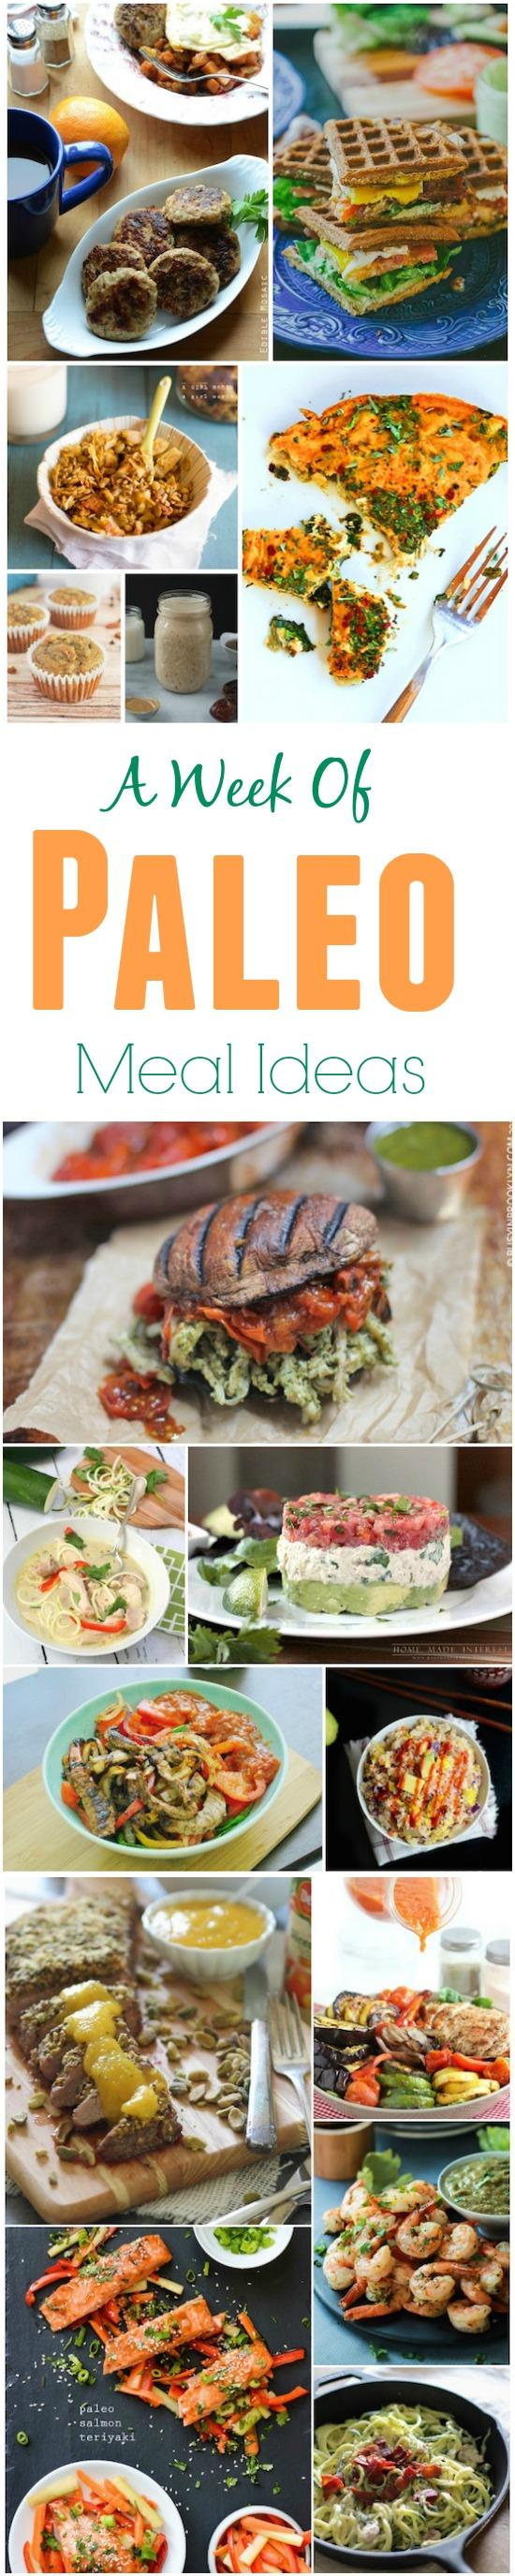 A week of paleo meal ideas to help you plan your menu next week!